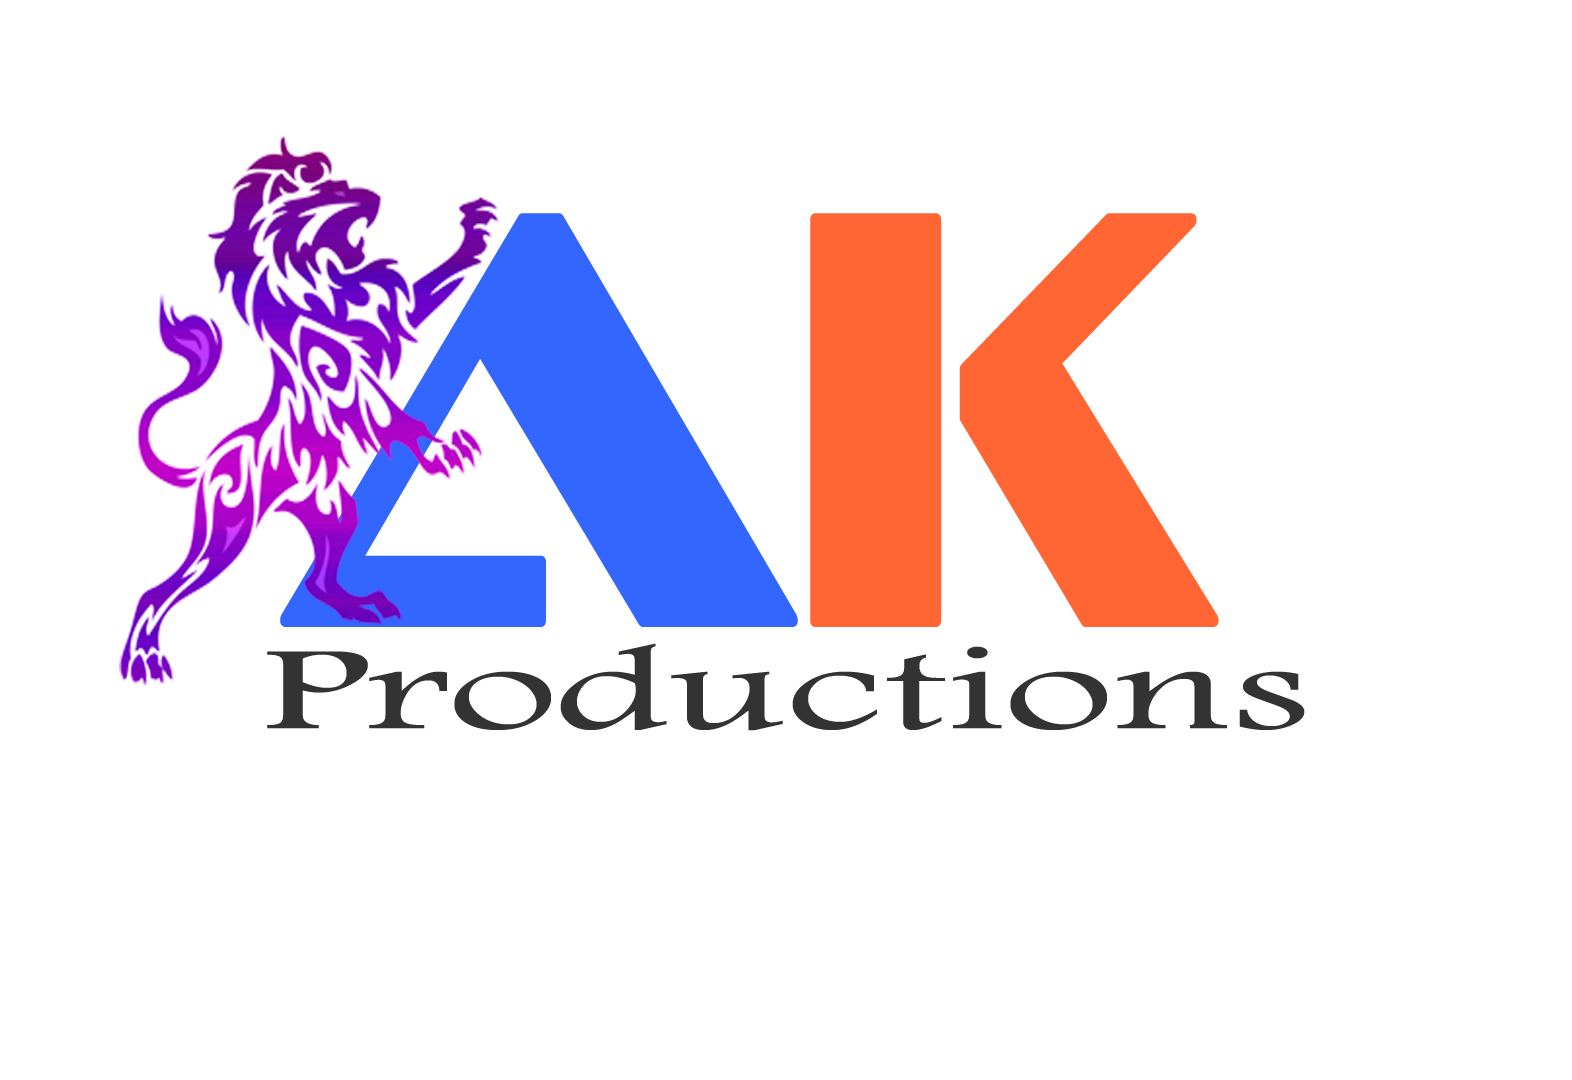 Ak photography logo png. Jrs design new editing